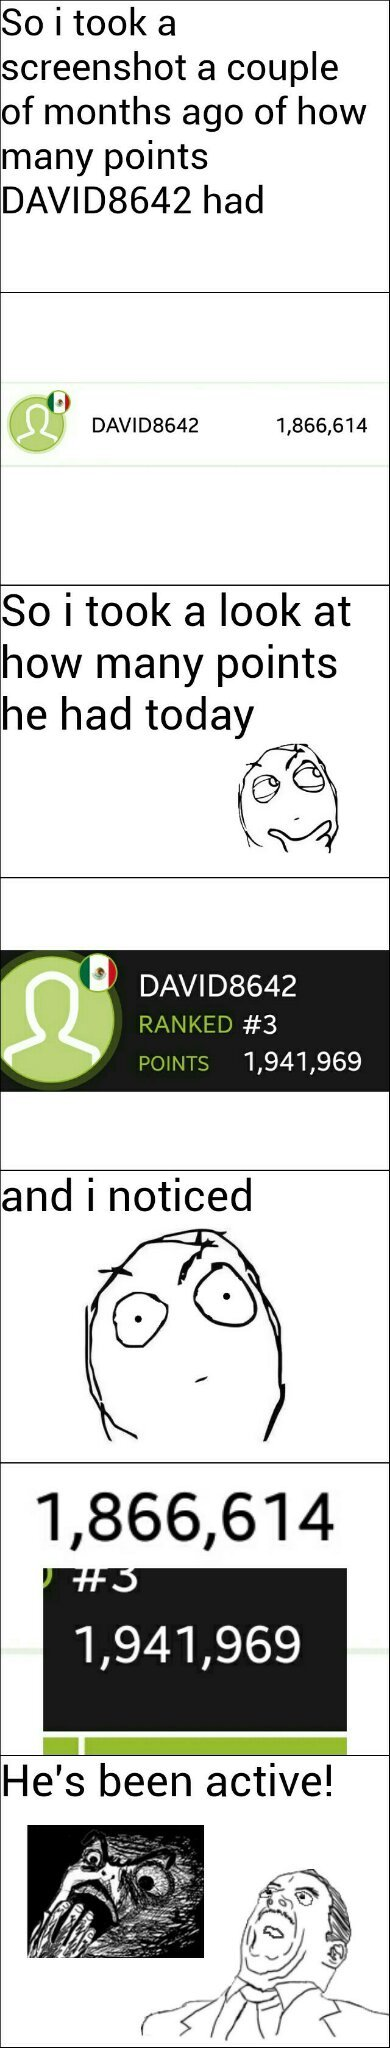 DAVID8642 was #1 a long time ago for those who don't know - meme